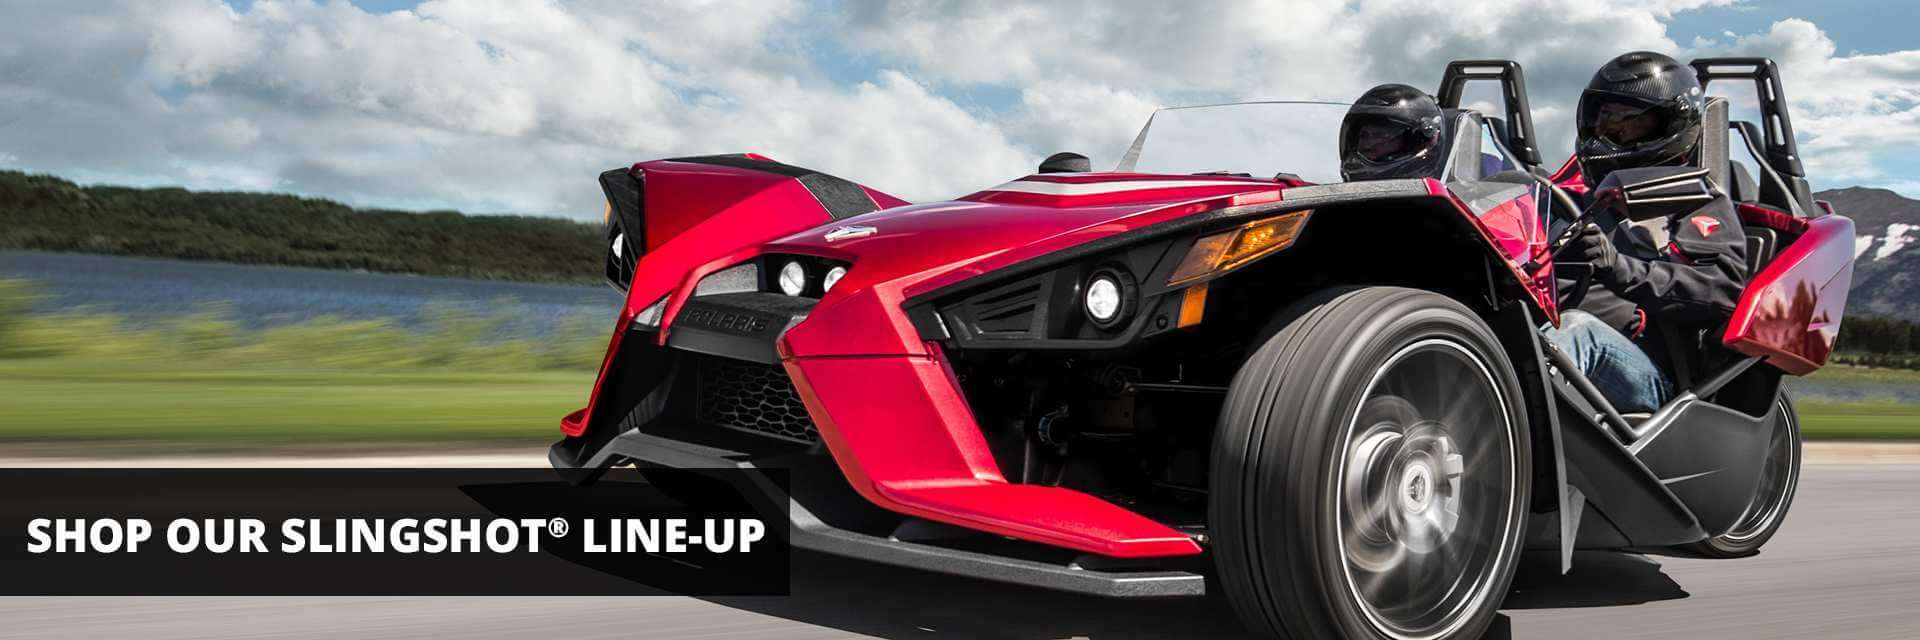 Broadway Powersports | Shop Slingshot Line-Up